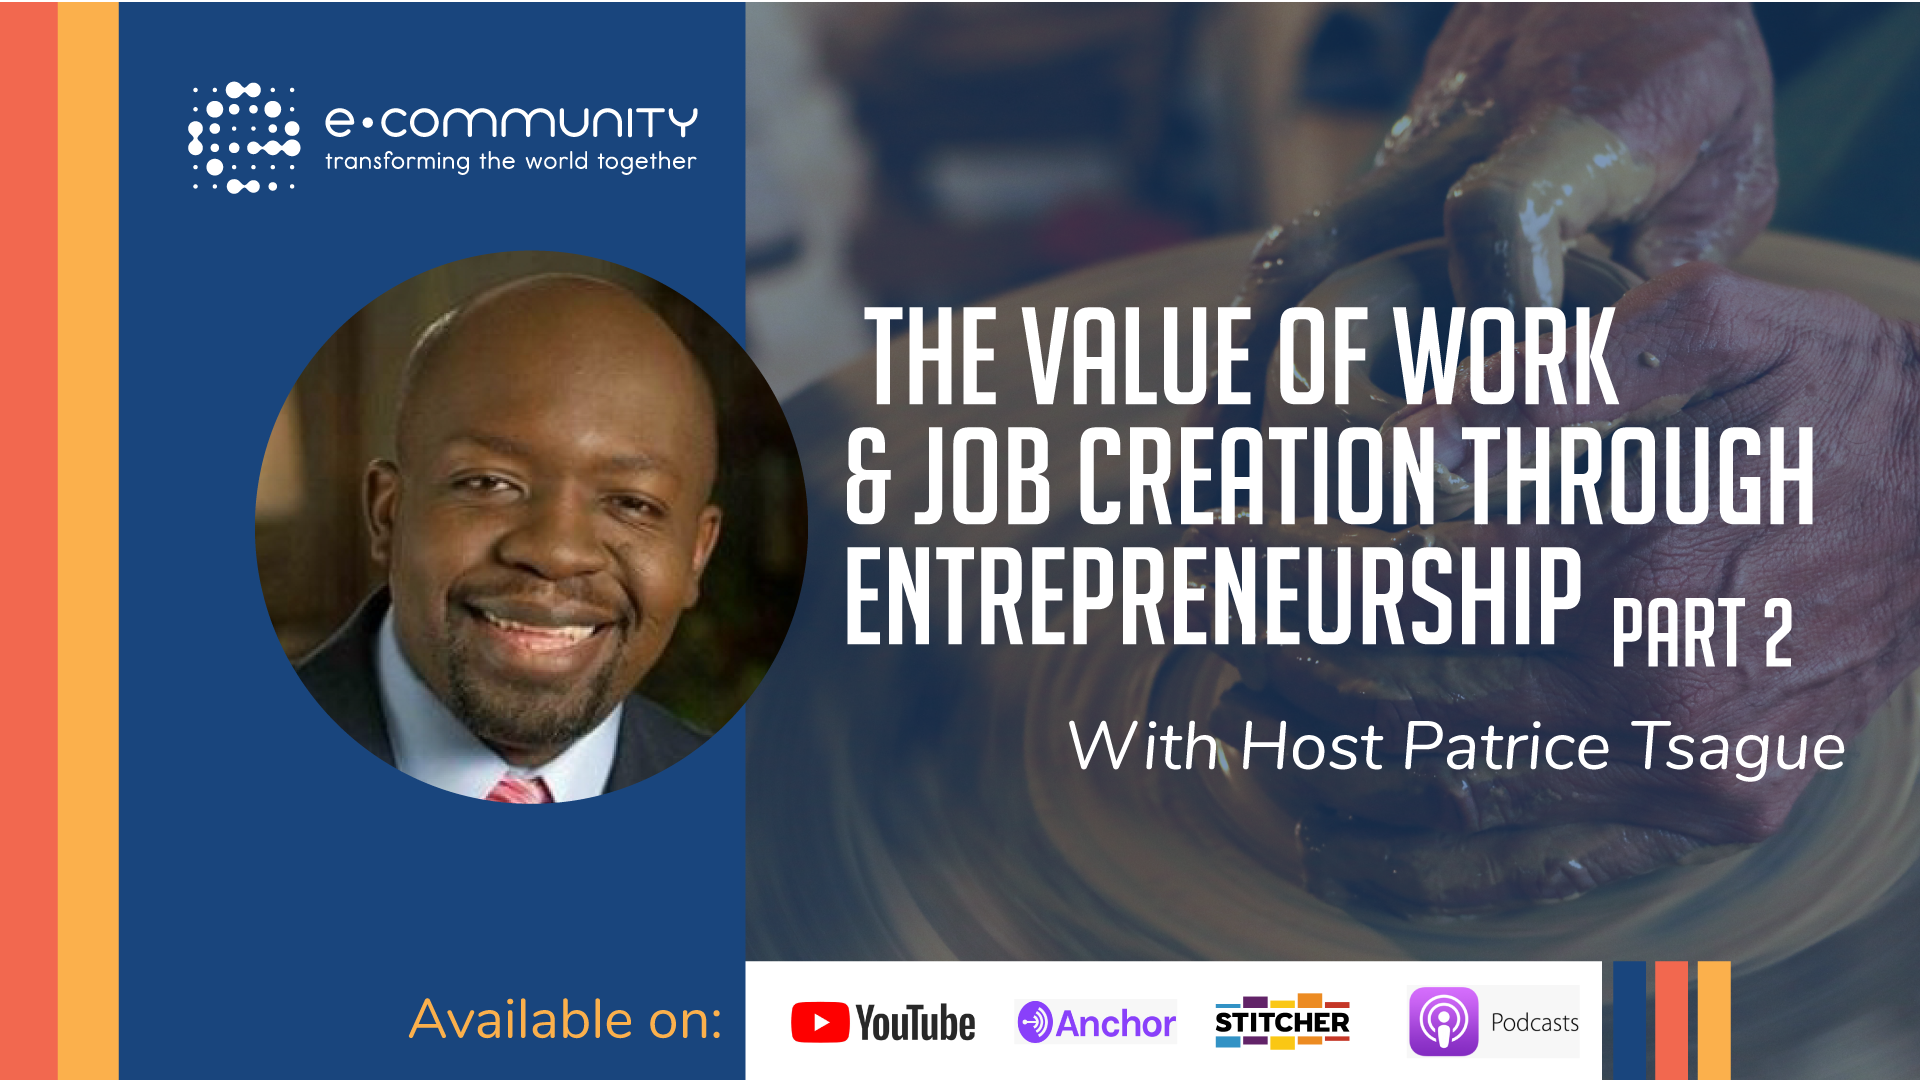 The Value of Work Part II